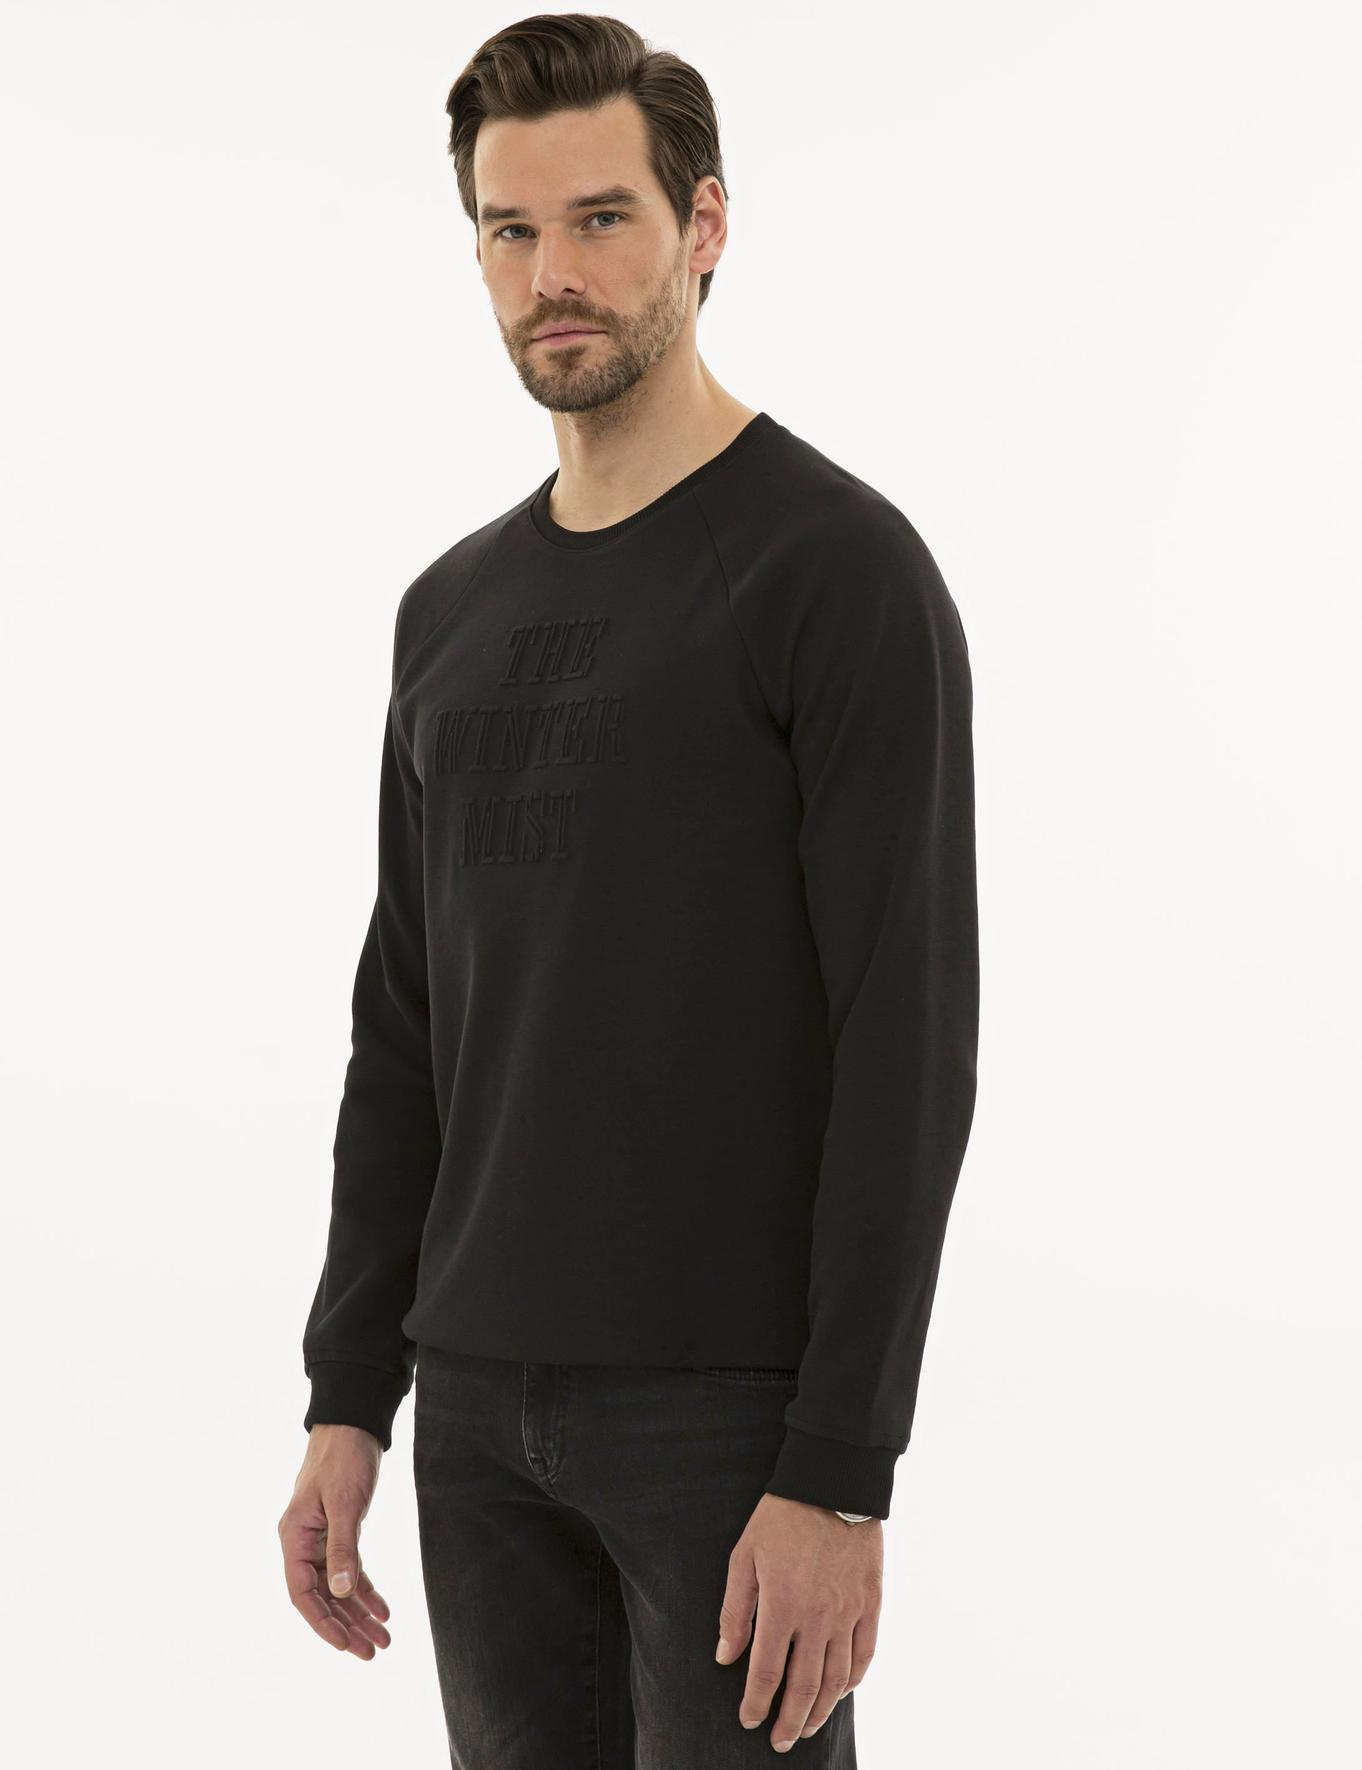 Siyah Regular Fit Sweatshirt